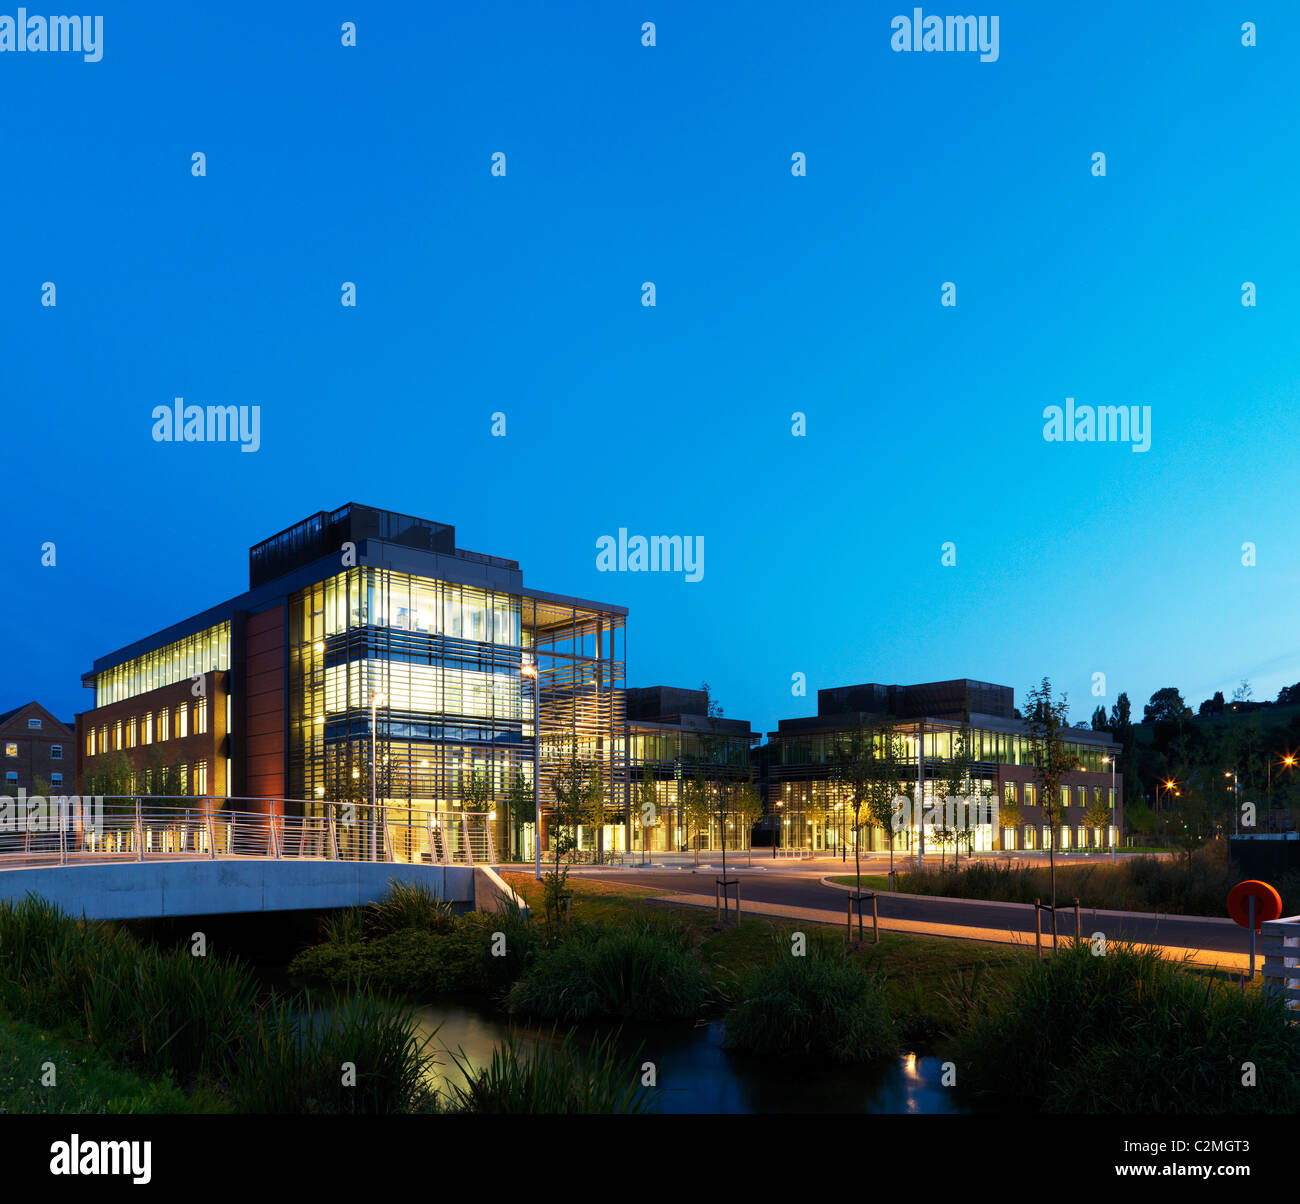 Glory Park, Wooburn Green, High Wycombe. An environmentally conscious business park. Grade A BREEAM 'excellent' - Stock Image